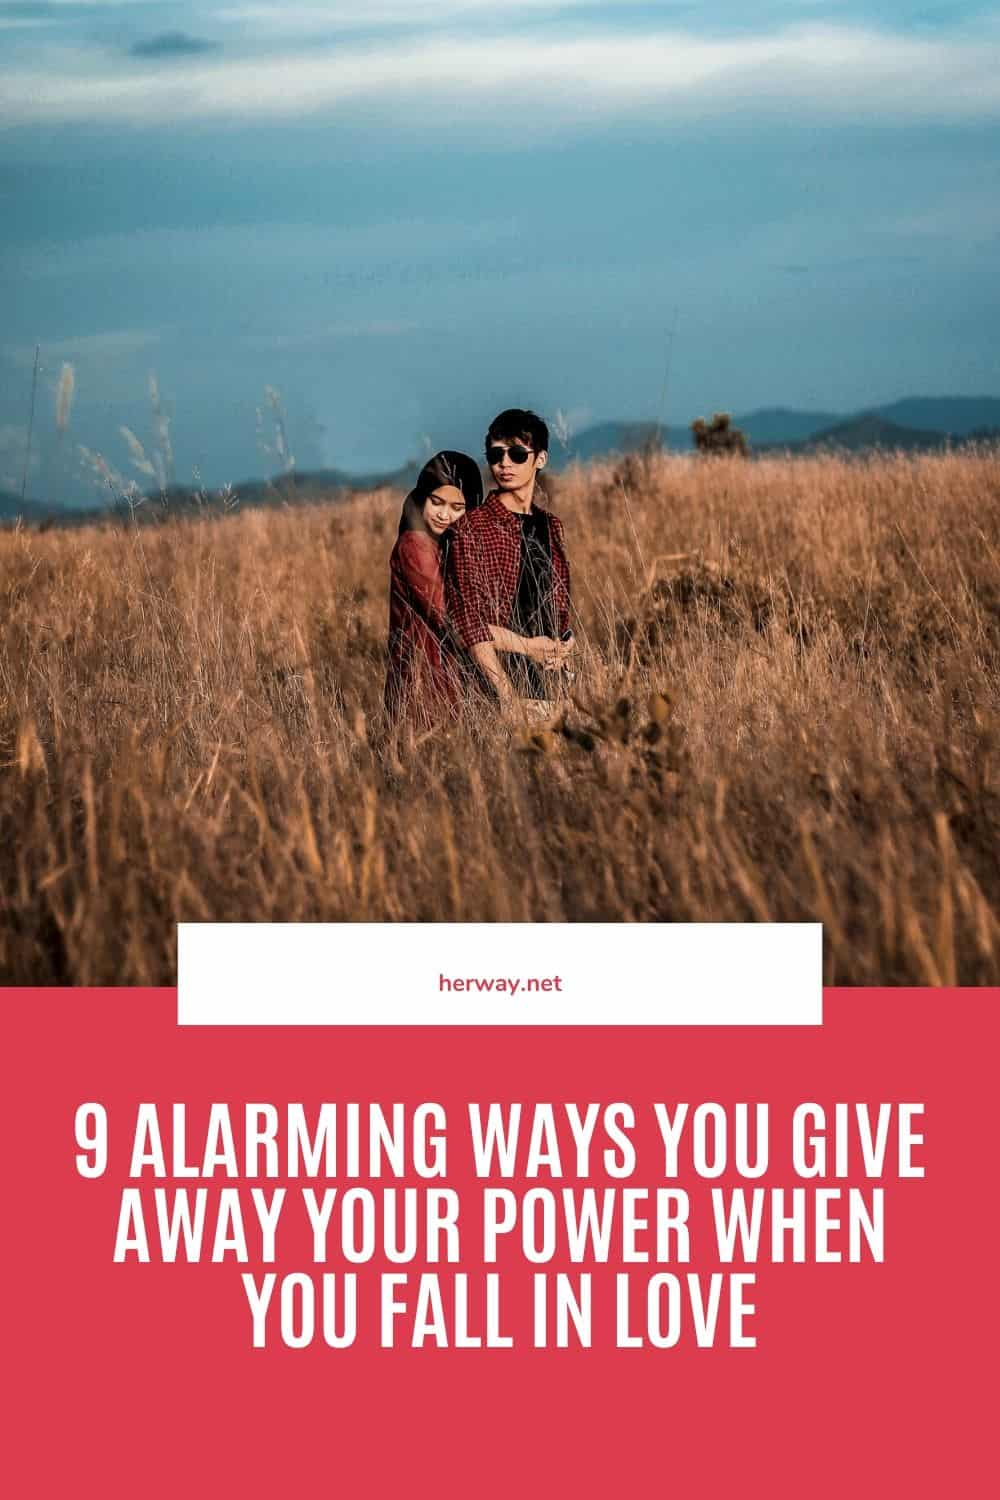 9 Alarming Ways You Give Away Your Power When You Fall In Love